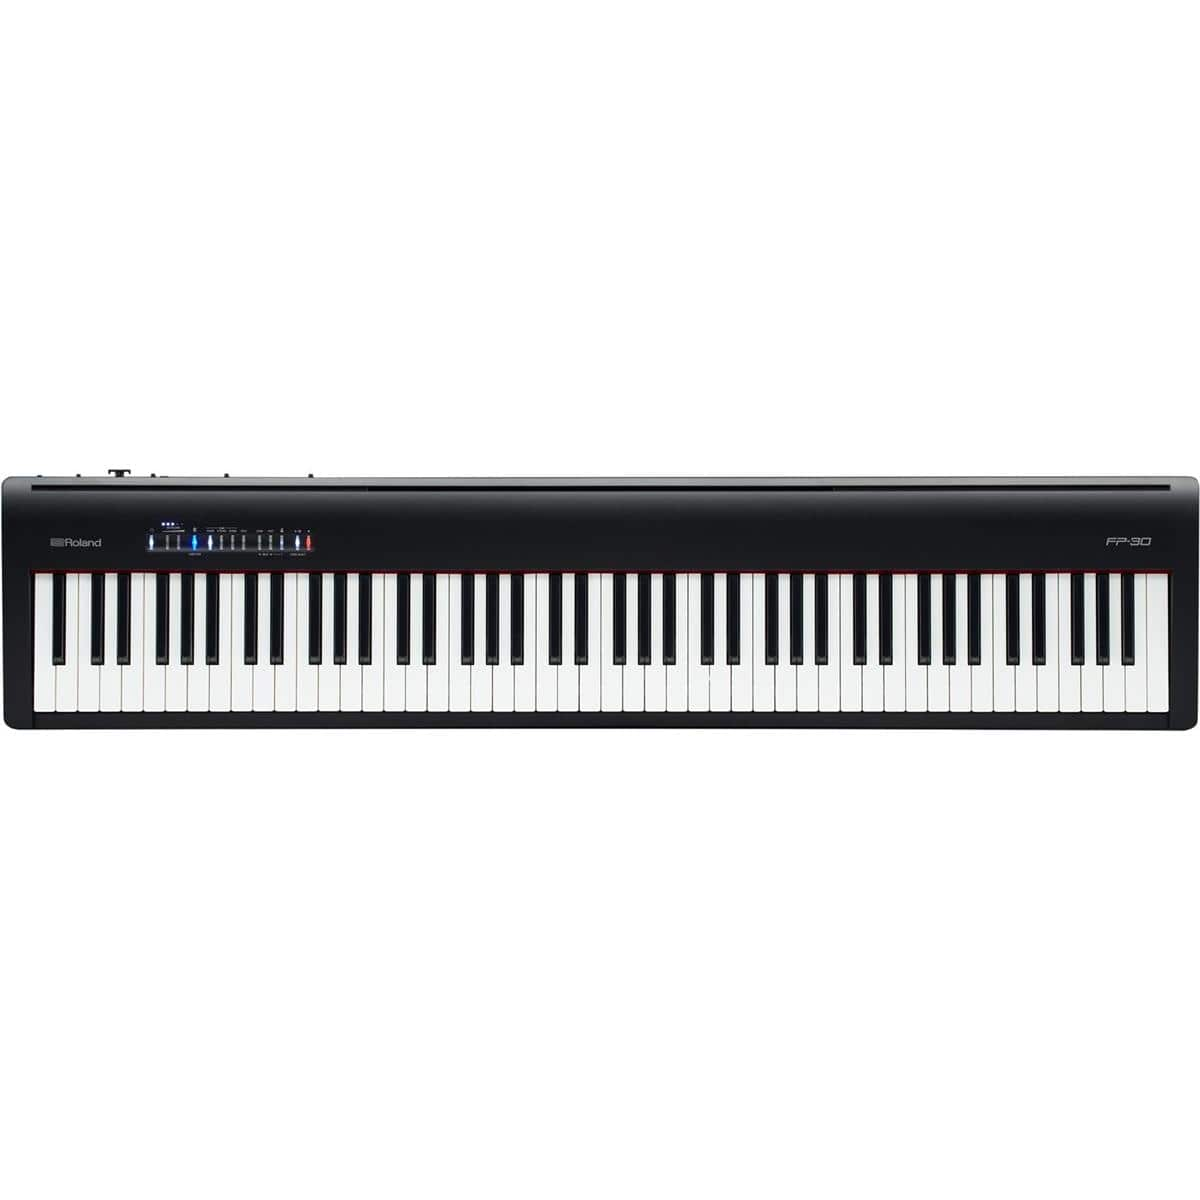 Roland FP-30 88 Key SuperNATURAL Digital Piano $480 + free s/h